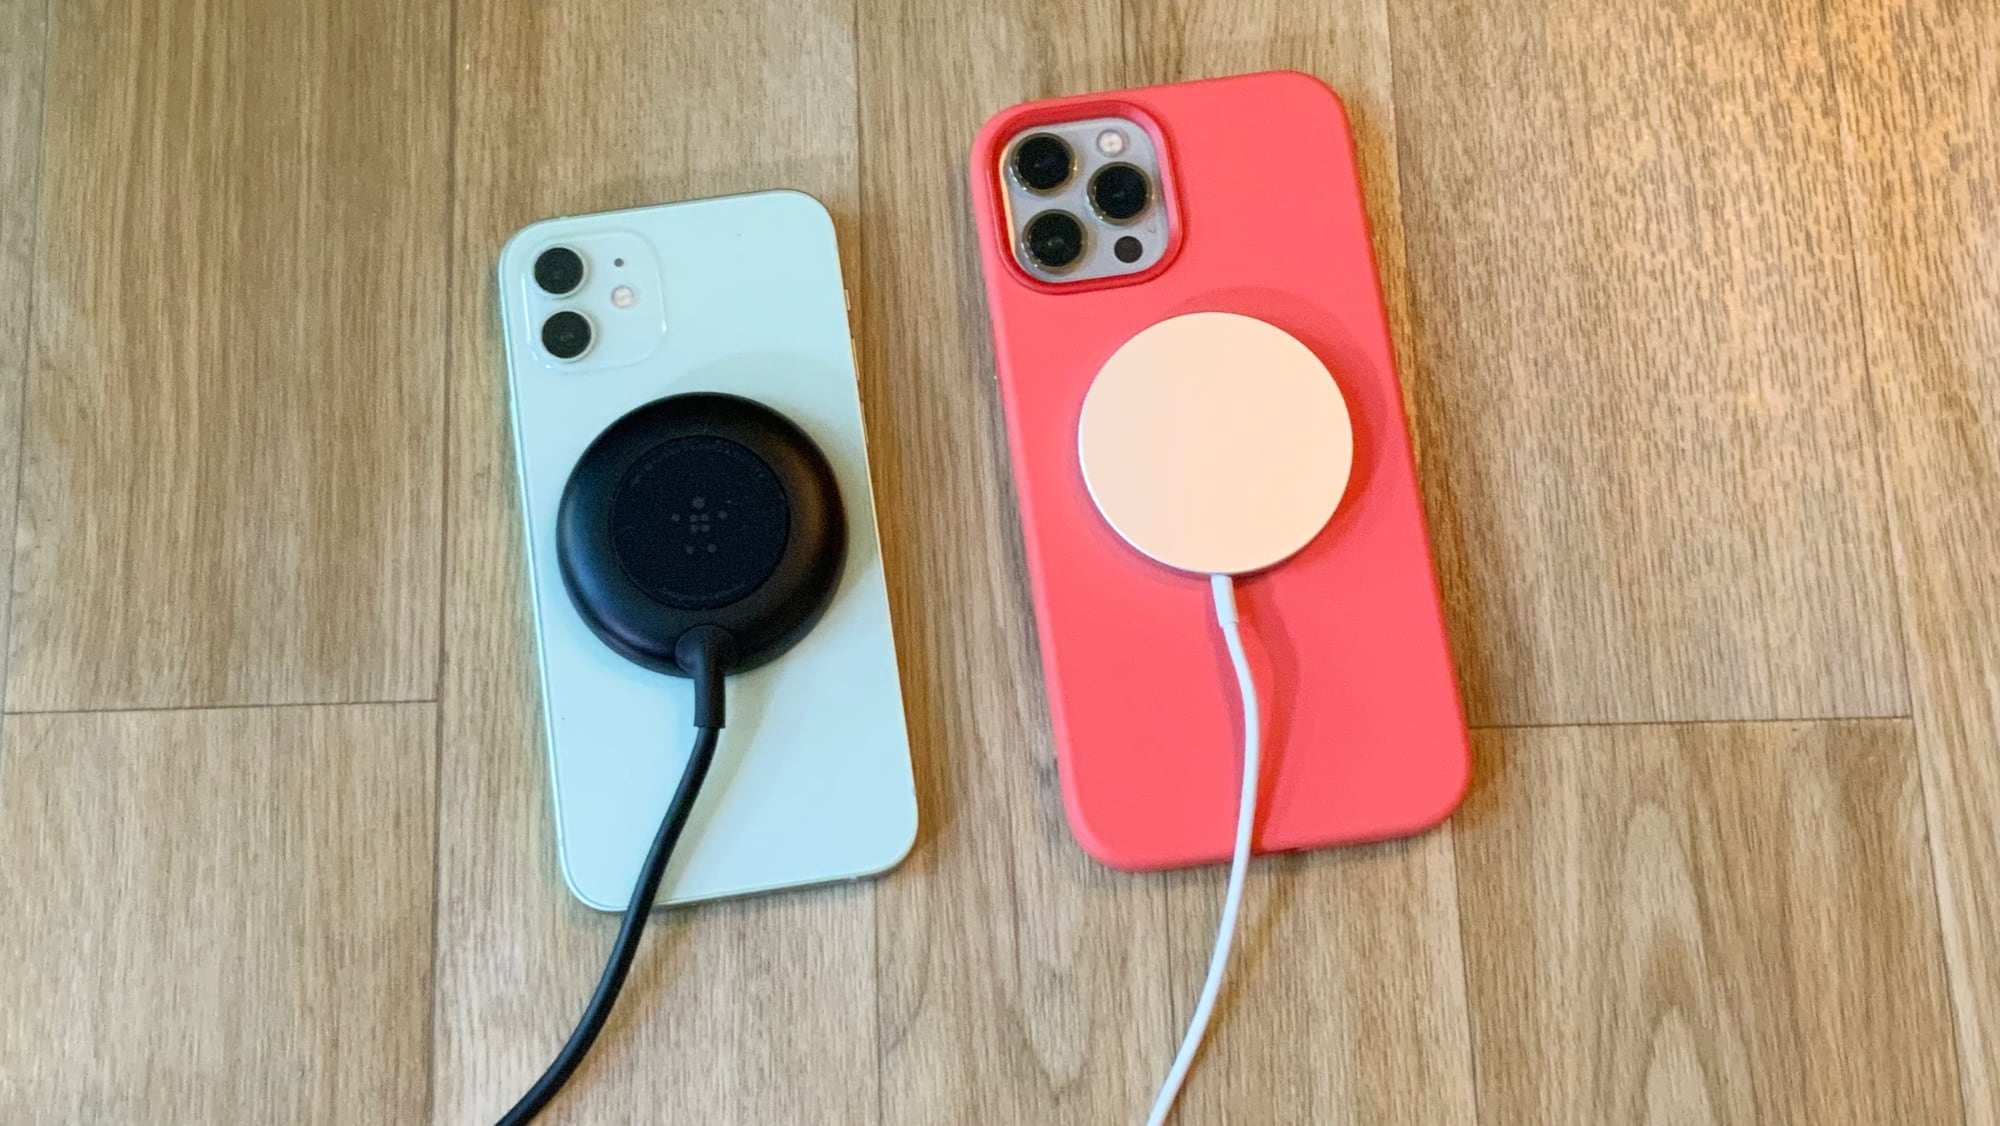 Review: Belkin's $39 Magnetic Wireless Charger is Limited to 7.5W, But Comes With 20W Power Adapter